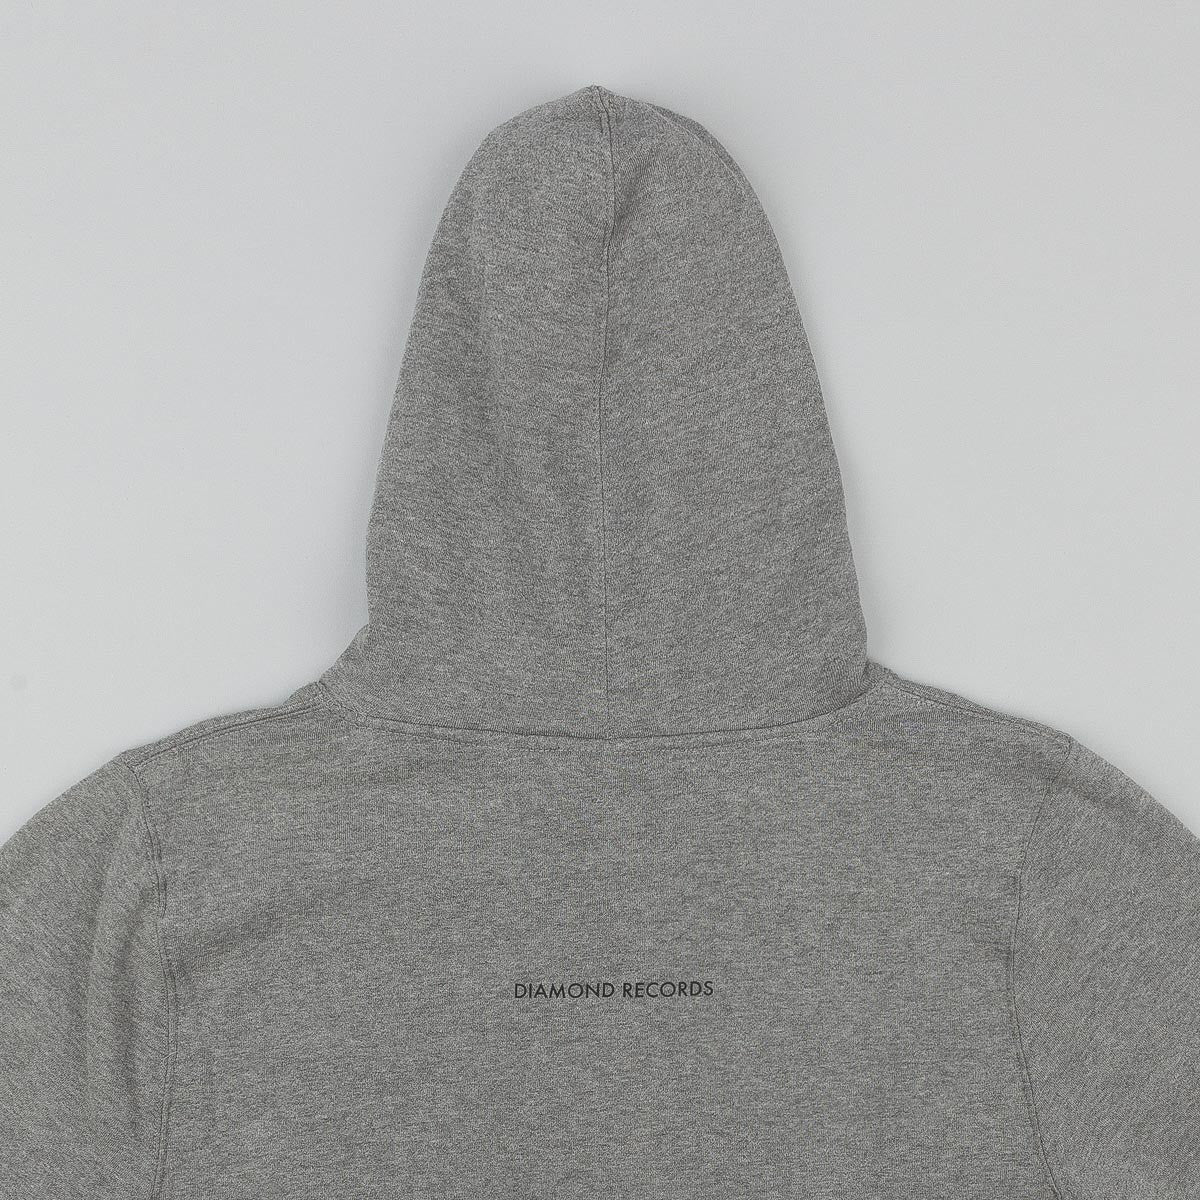 Diamond Records Hooded Sweatshirt - Gunmetal Heather